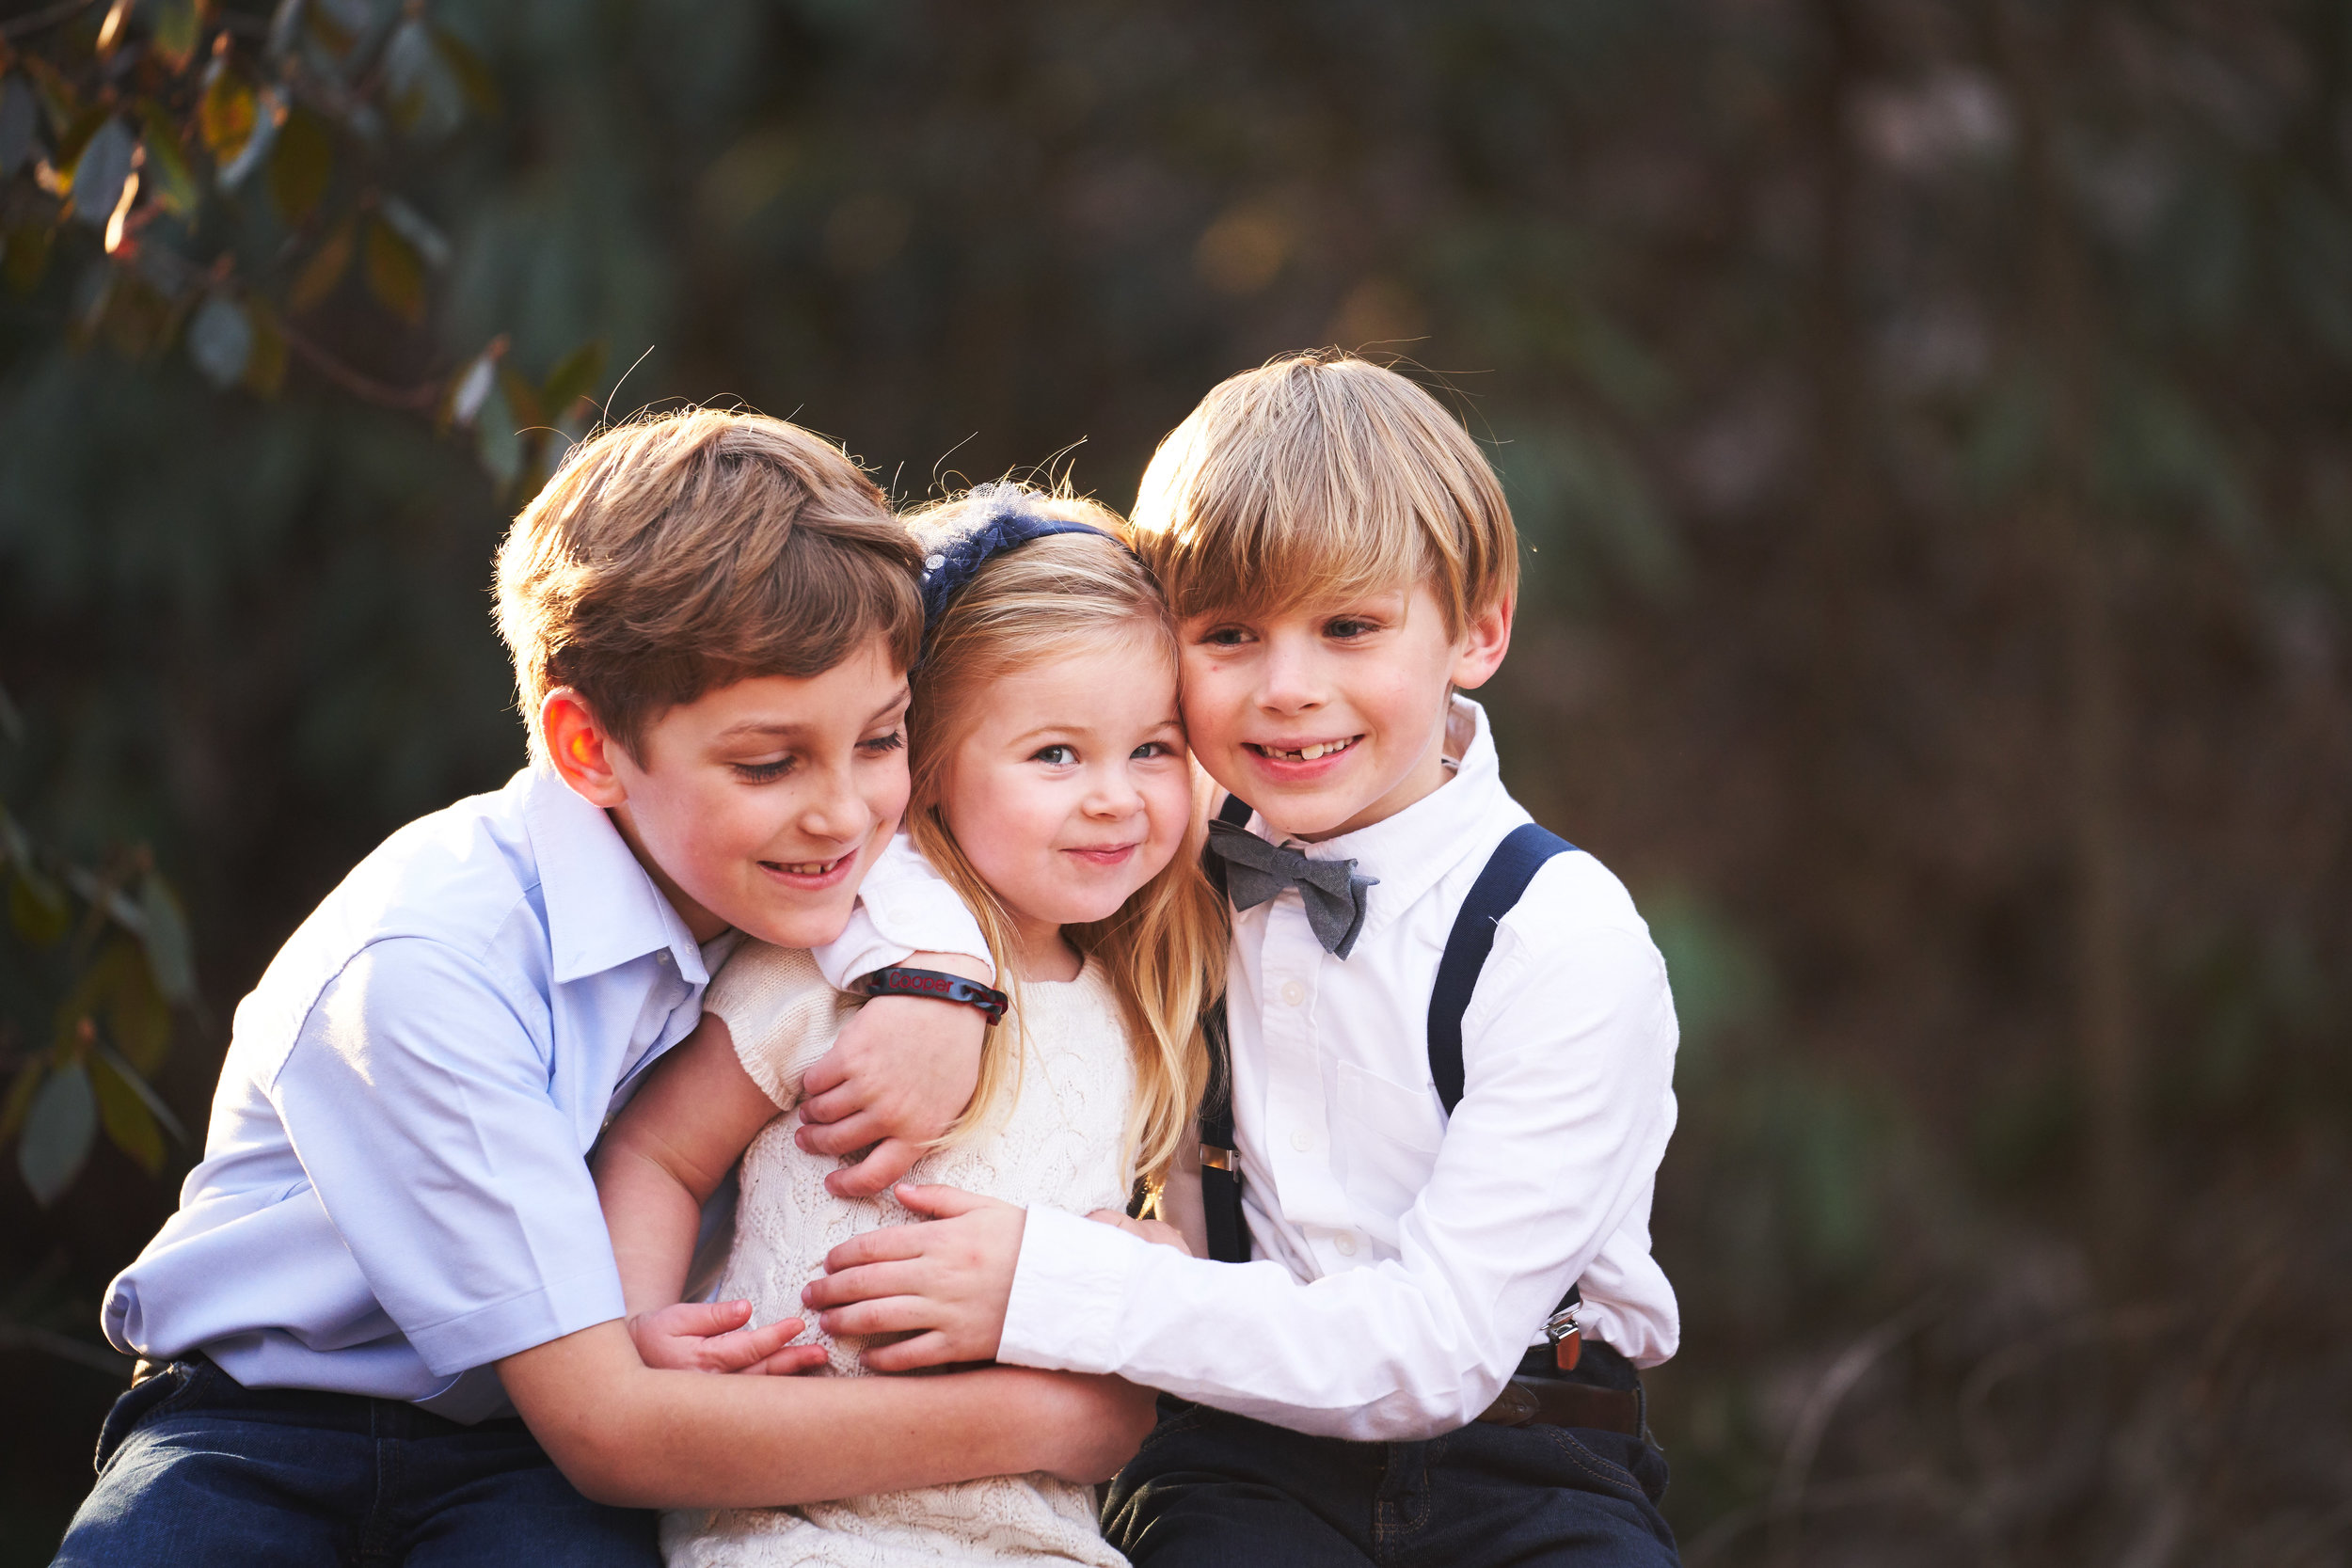 Siblings | Family Photo Session at the Clemson Botanical Gardens